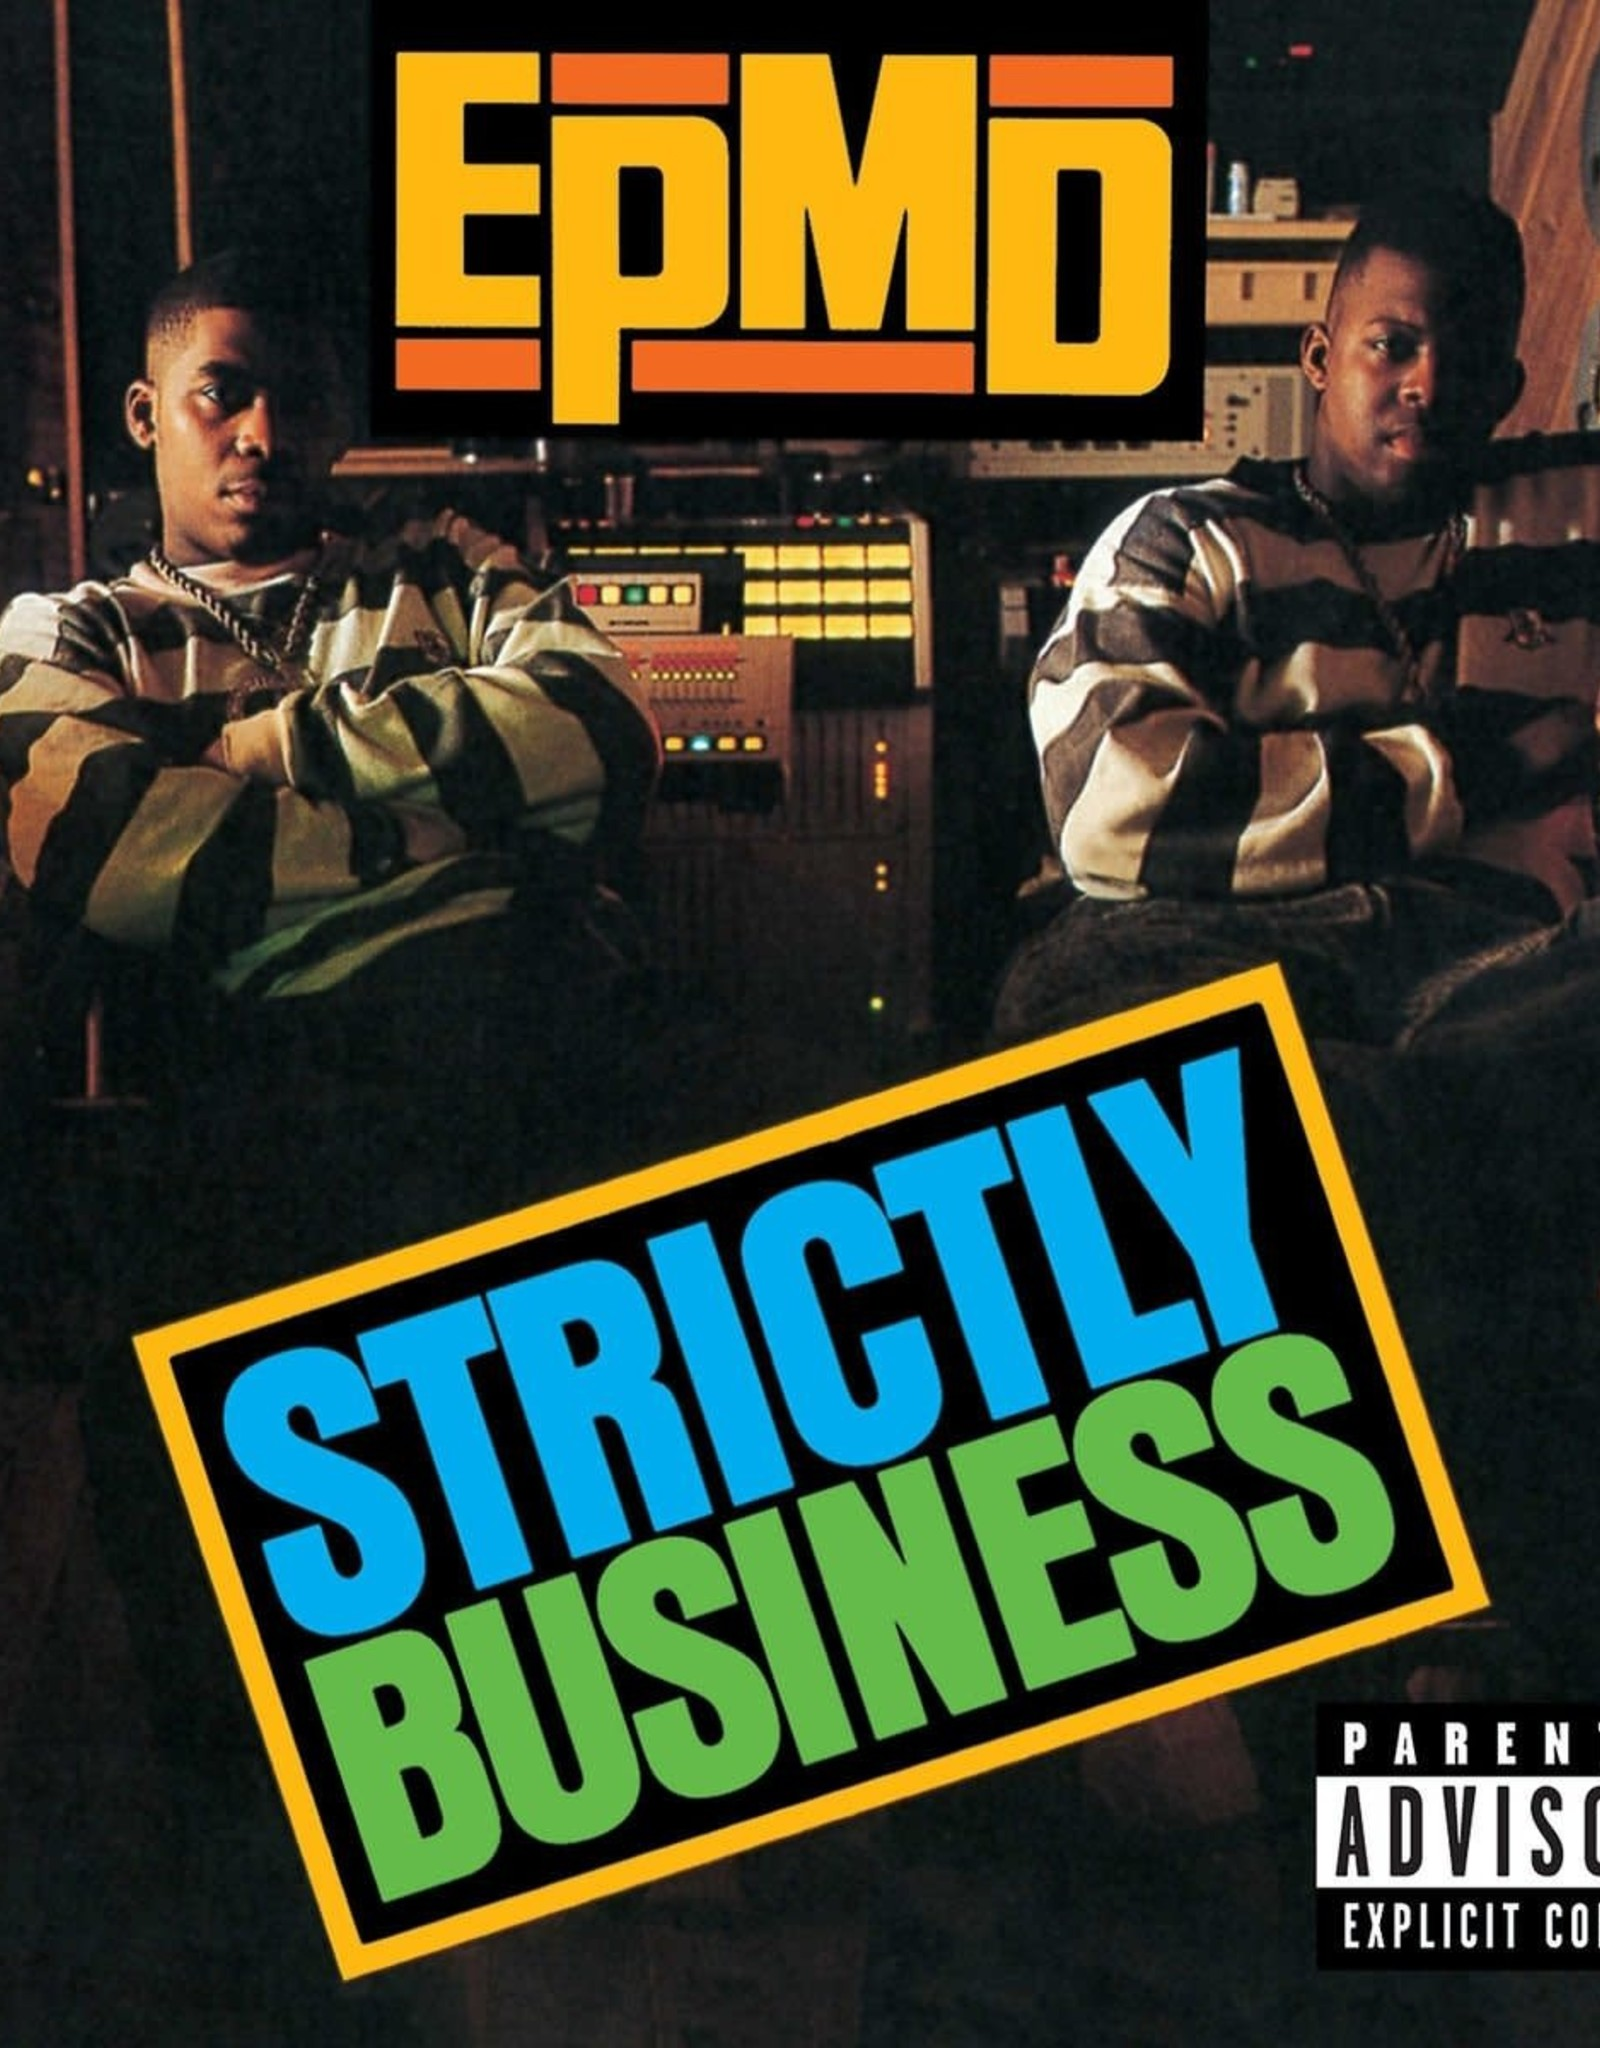 Epmd (2 Lp'S) - Strictly Business